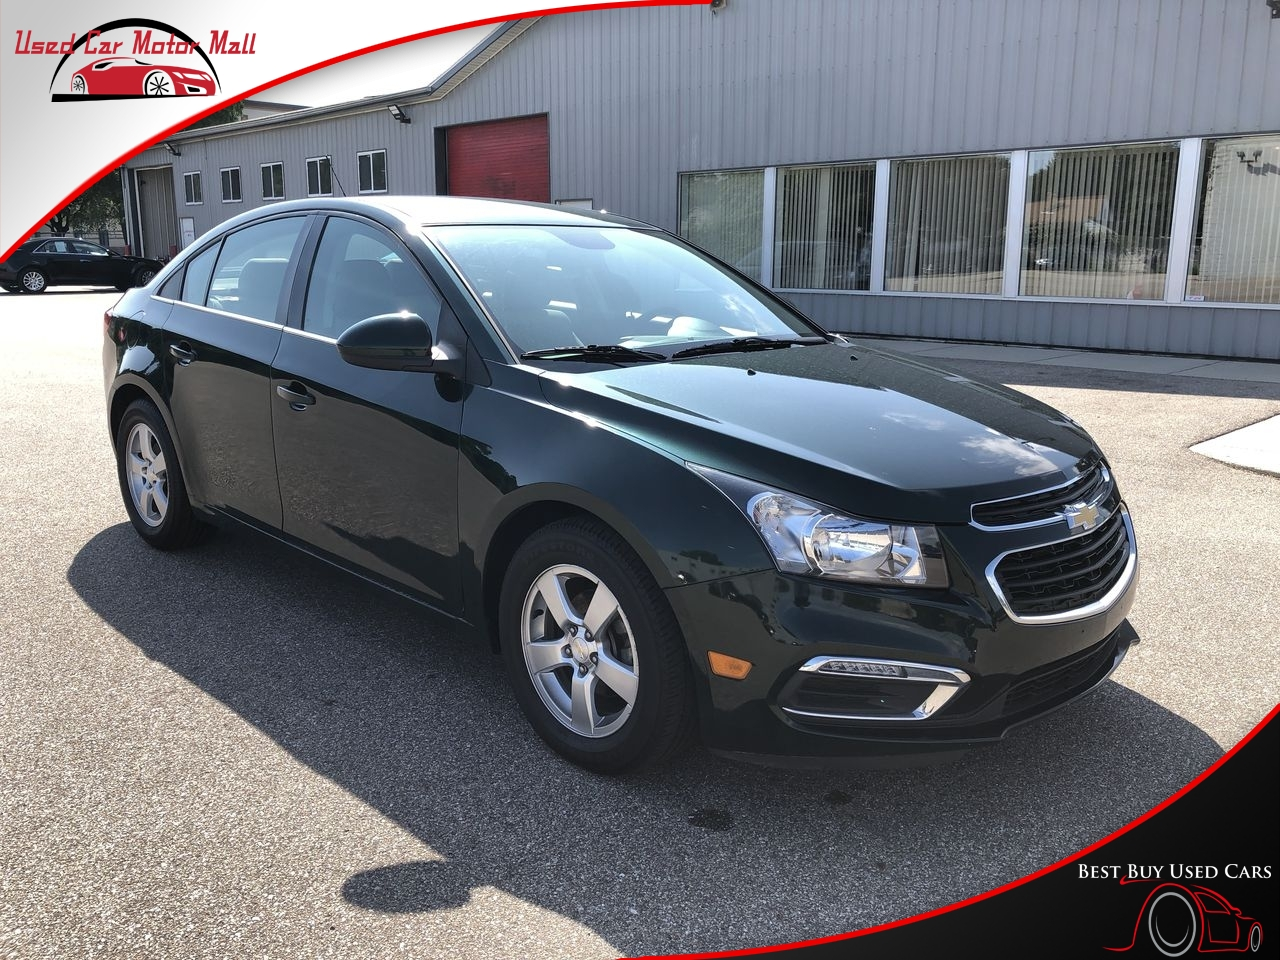 2014 Chevrolet Cruze 1LT Sedan FWD, 287961-3, Photo 1